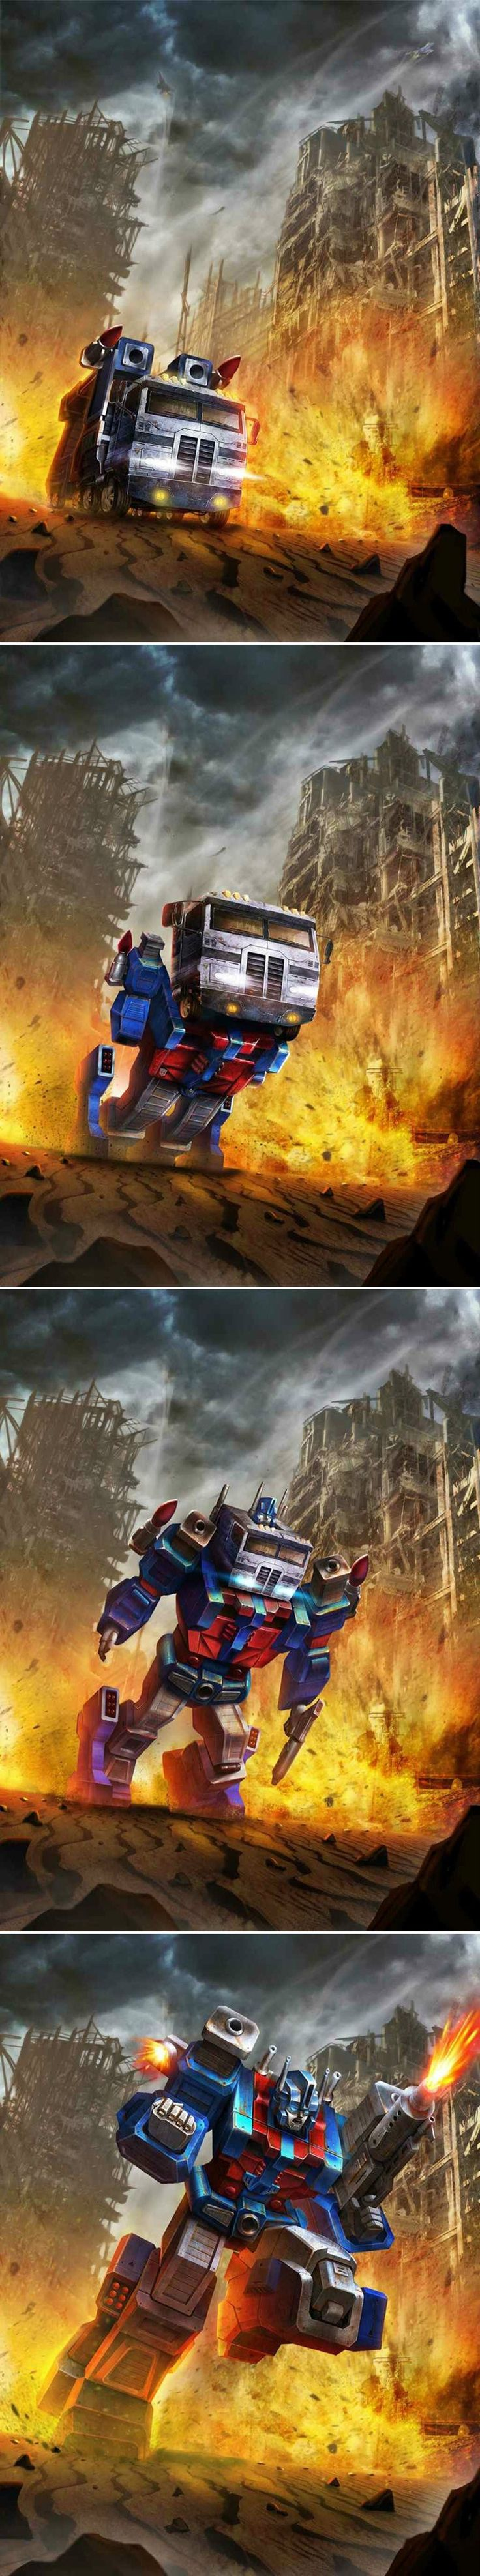 best transformers images on pinterest